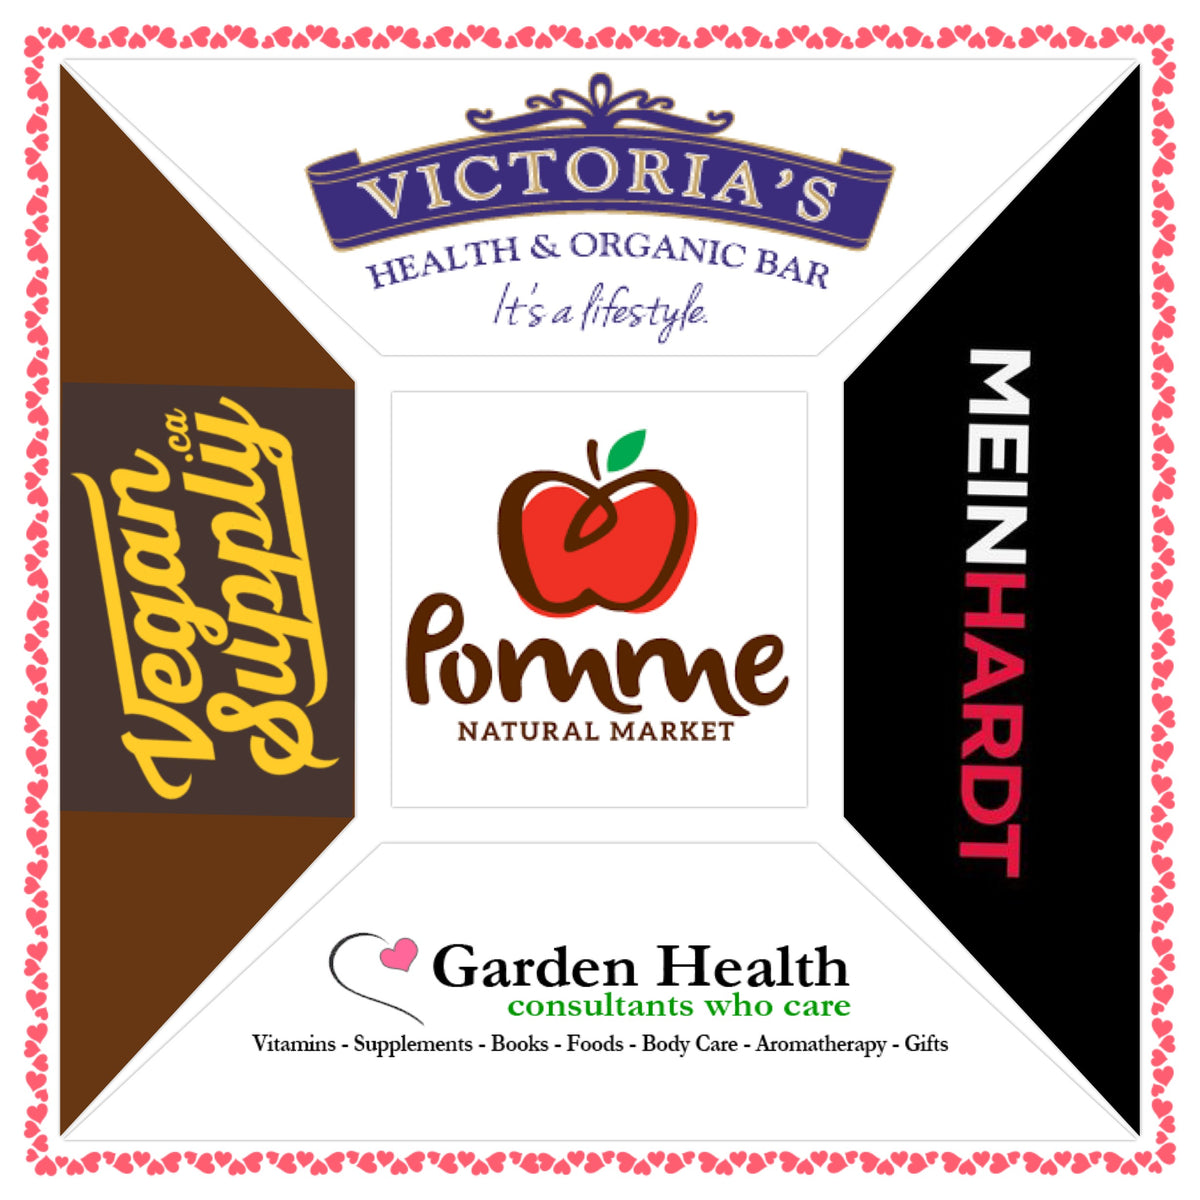 Victoria's Health & Organic Bar, Vegan Supply, Meinhardt, Pomme Natural Market